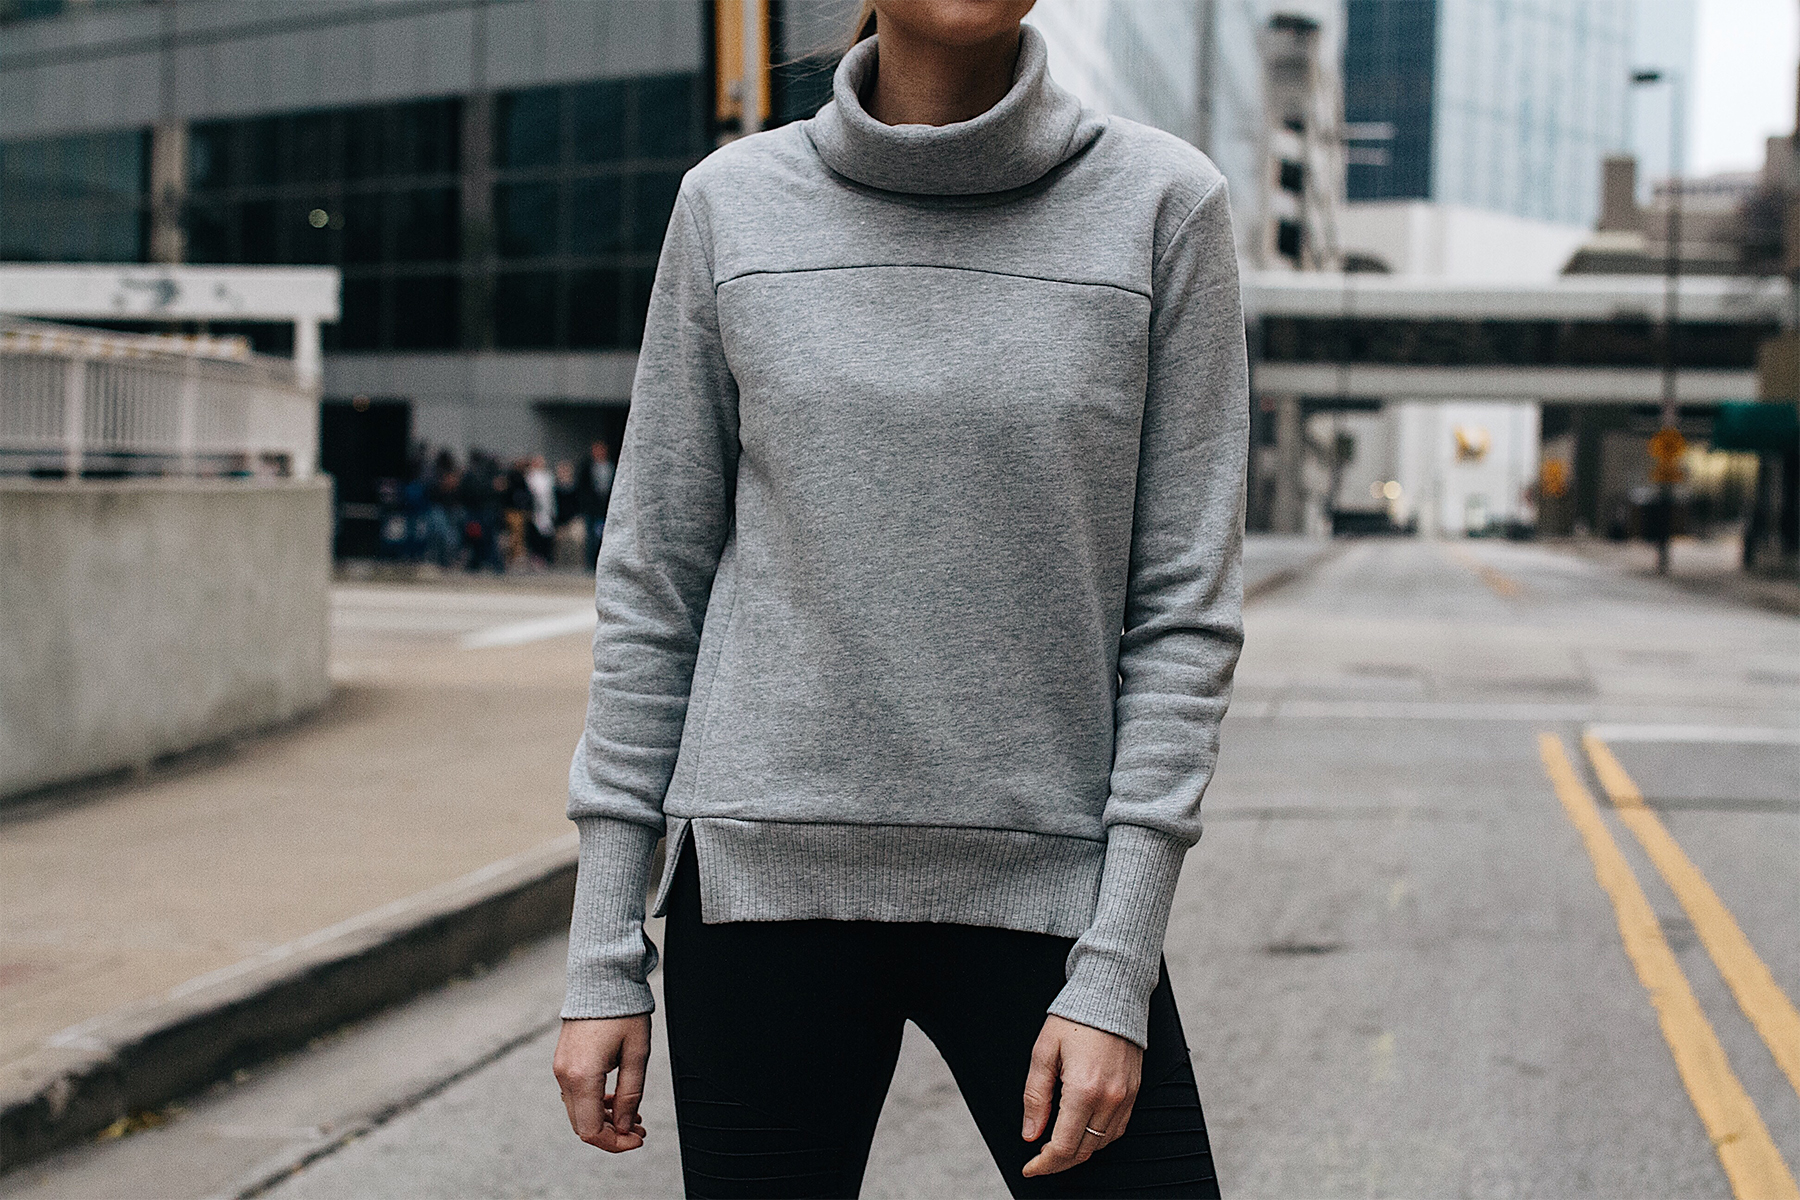 Woman Wearing Alo Grey Funnel Neck Sweatshirt Fashion Jackson Dallas Blogger Fashion Blogger Street Style Athletic Workout Apparel